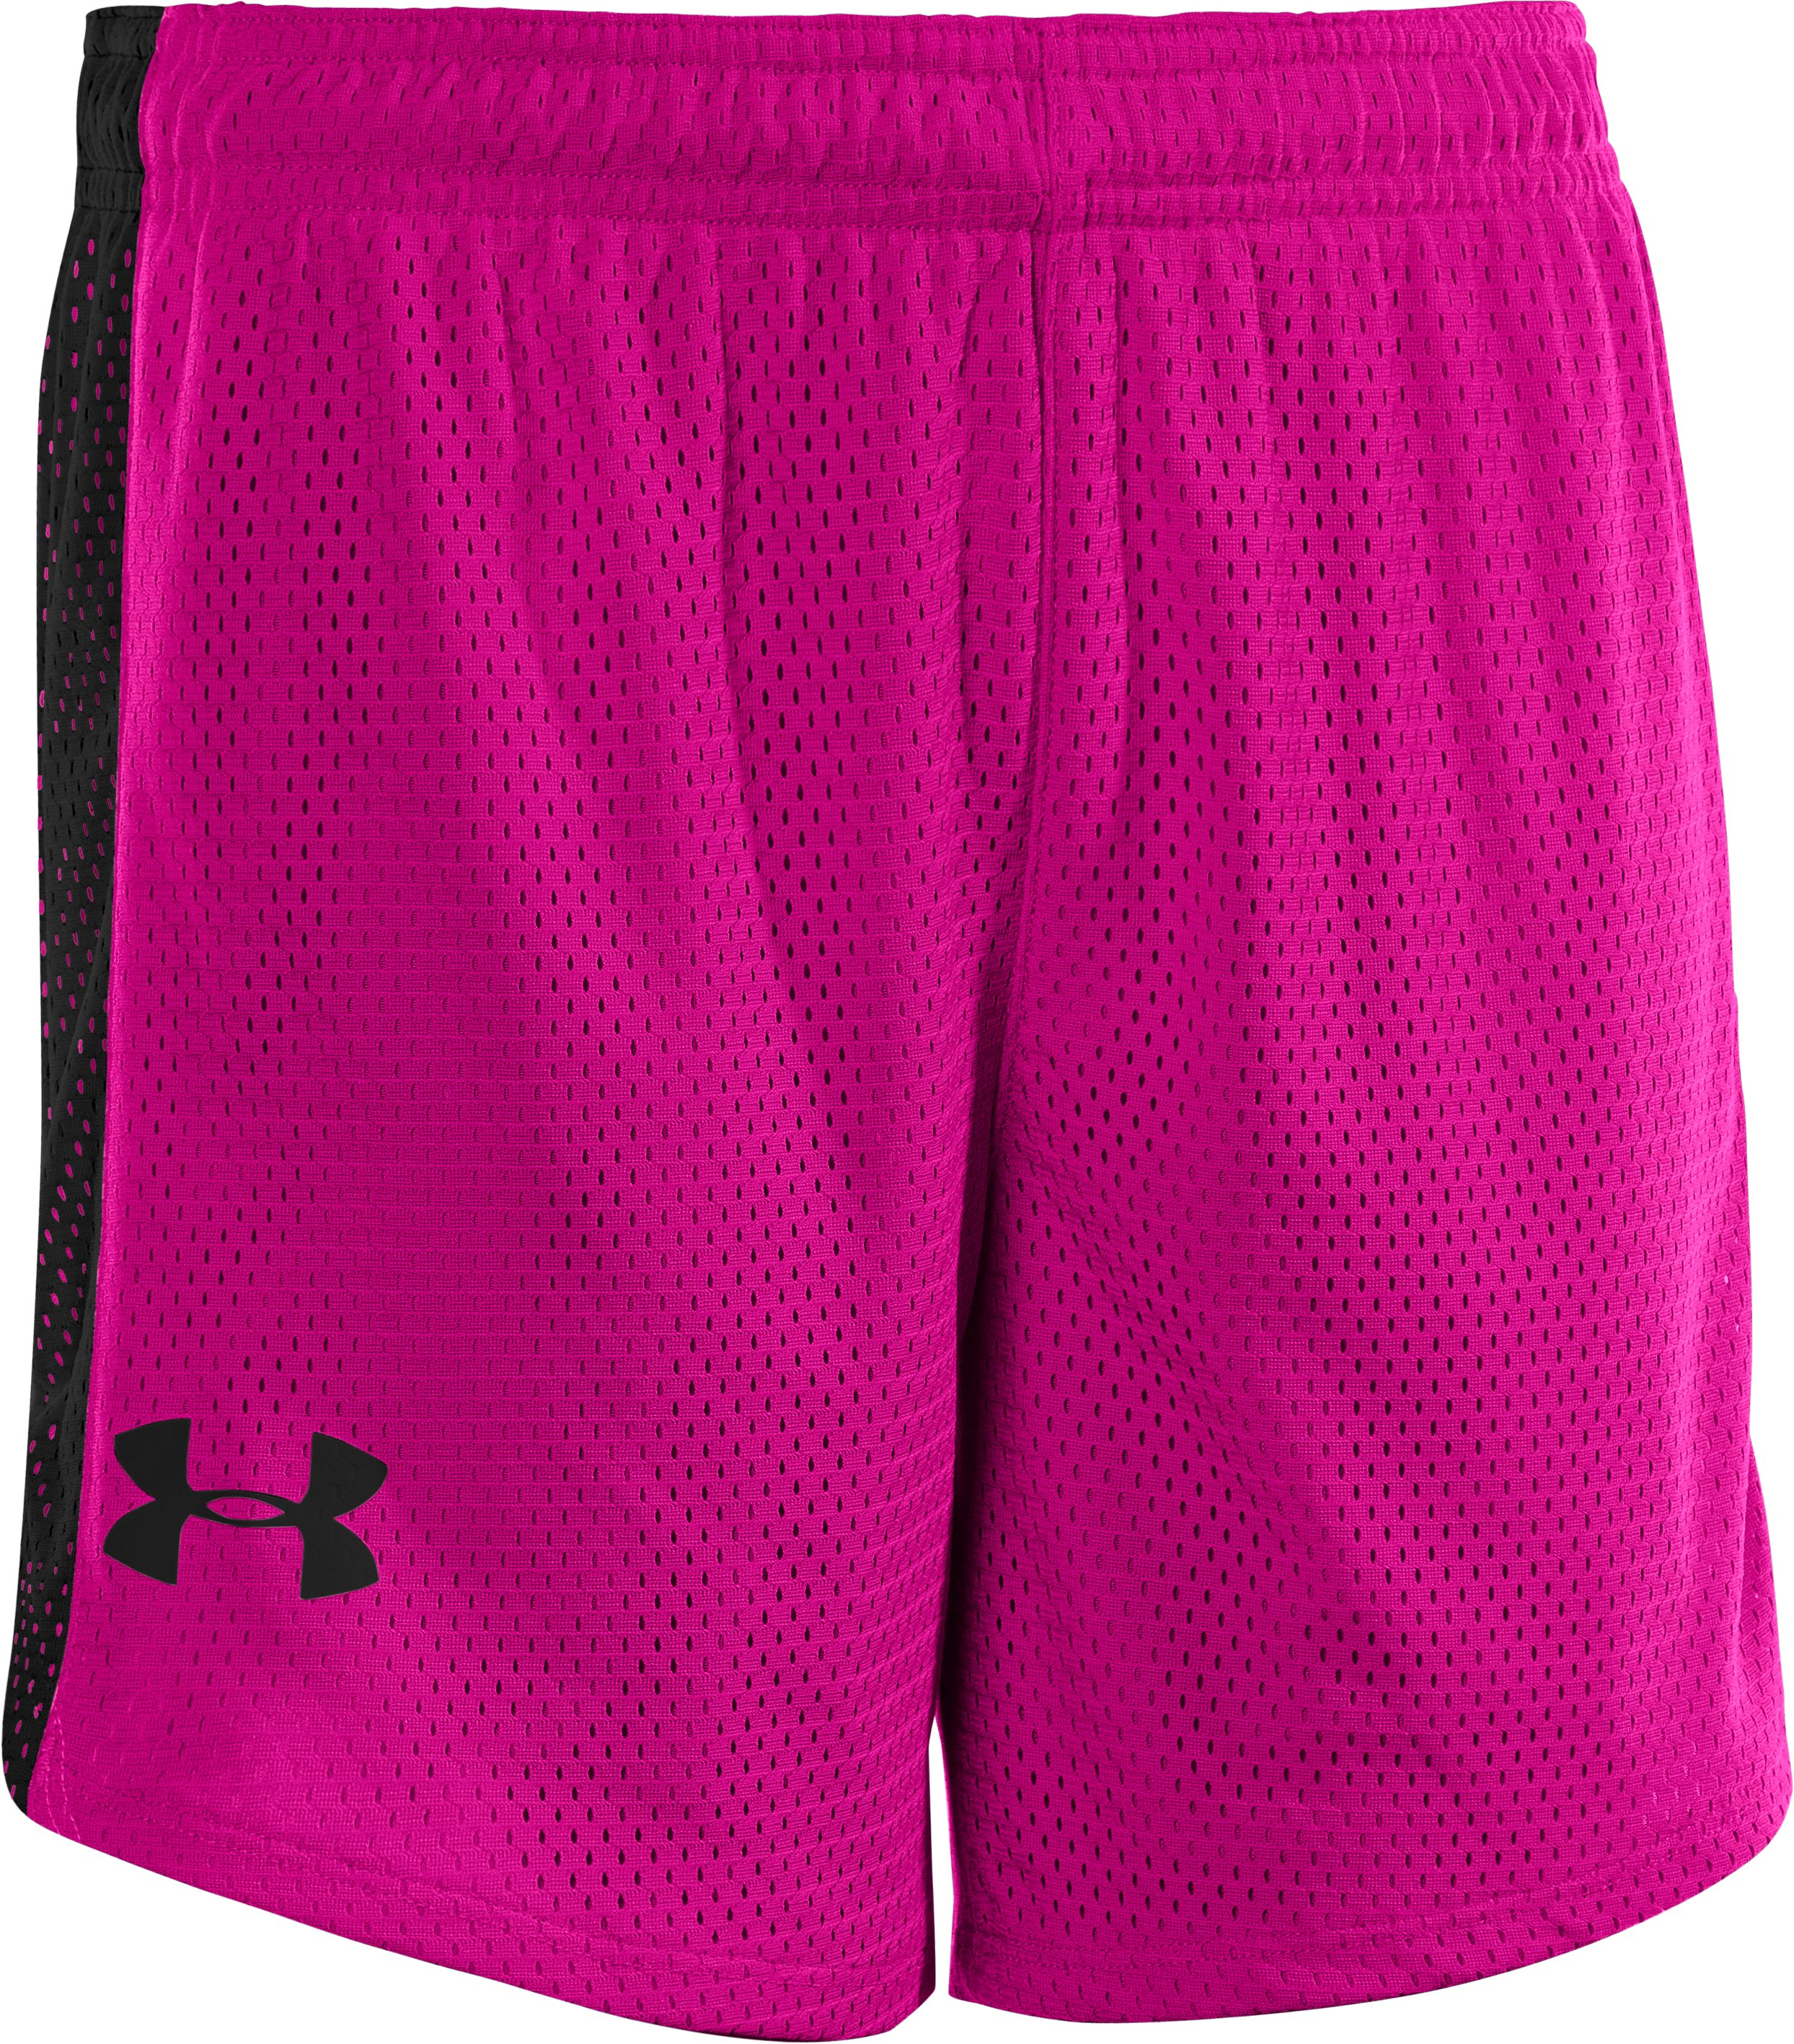 "Girls' UA Trophy 5"" Mesh Shorts, Tropic Pink"